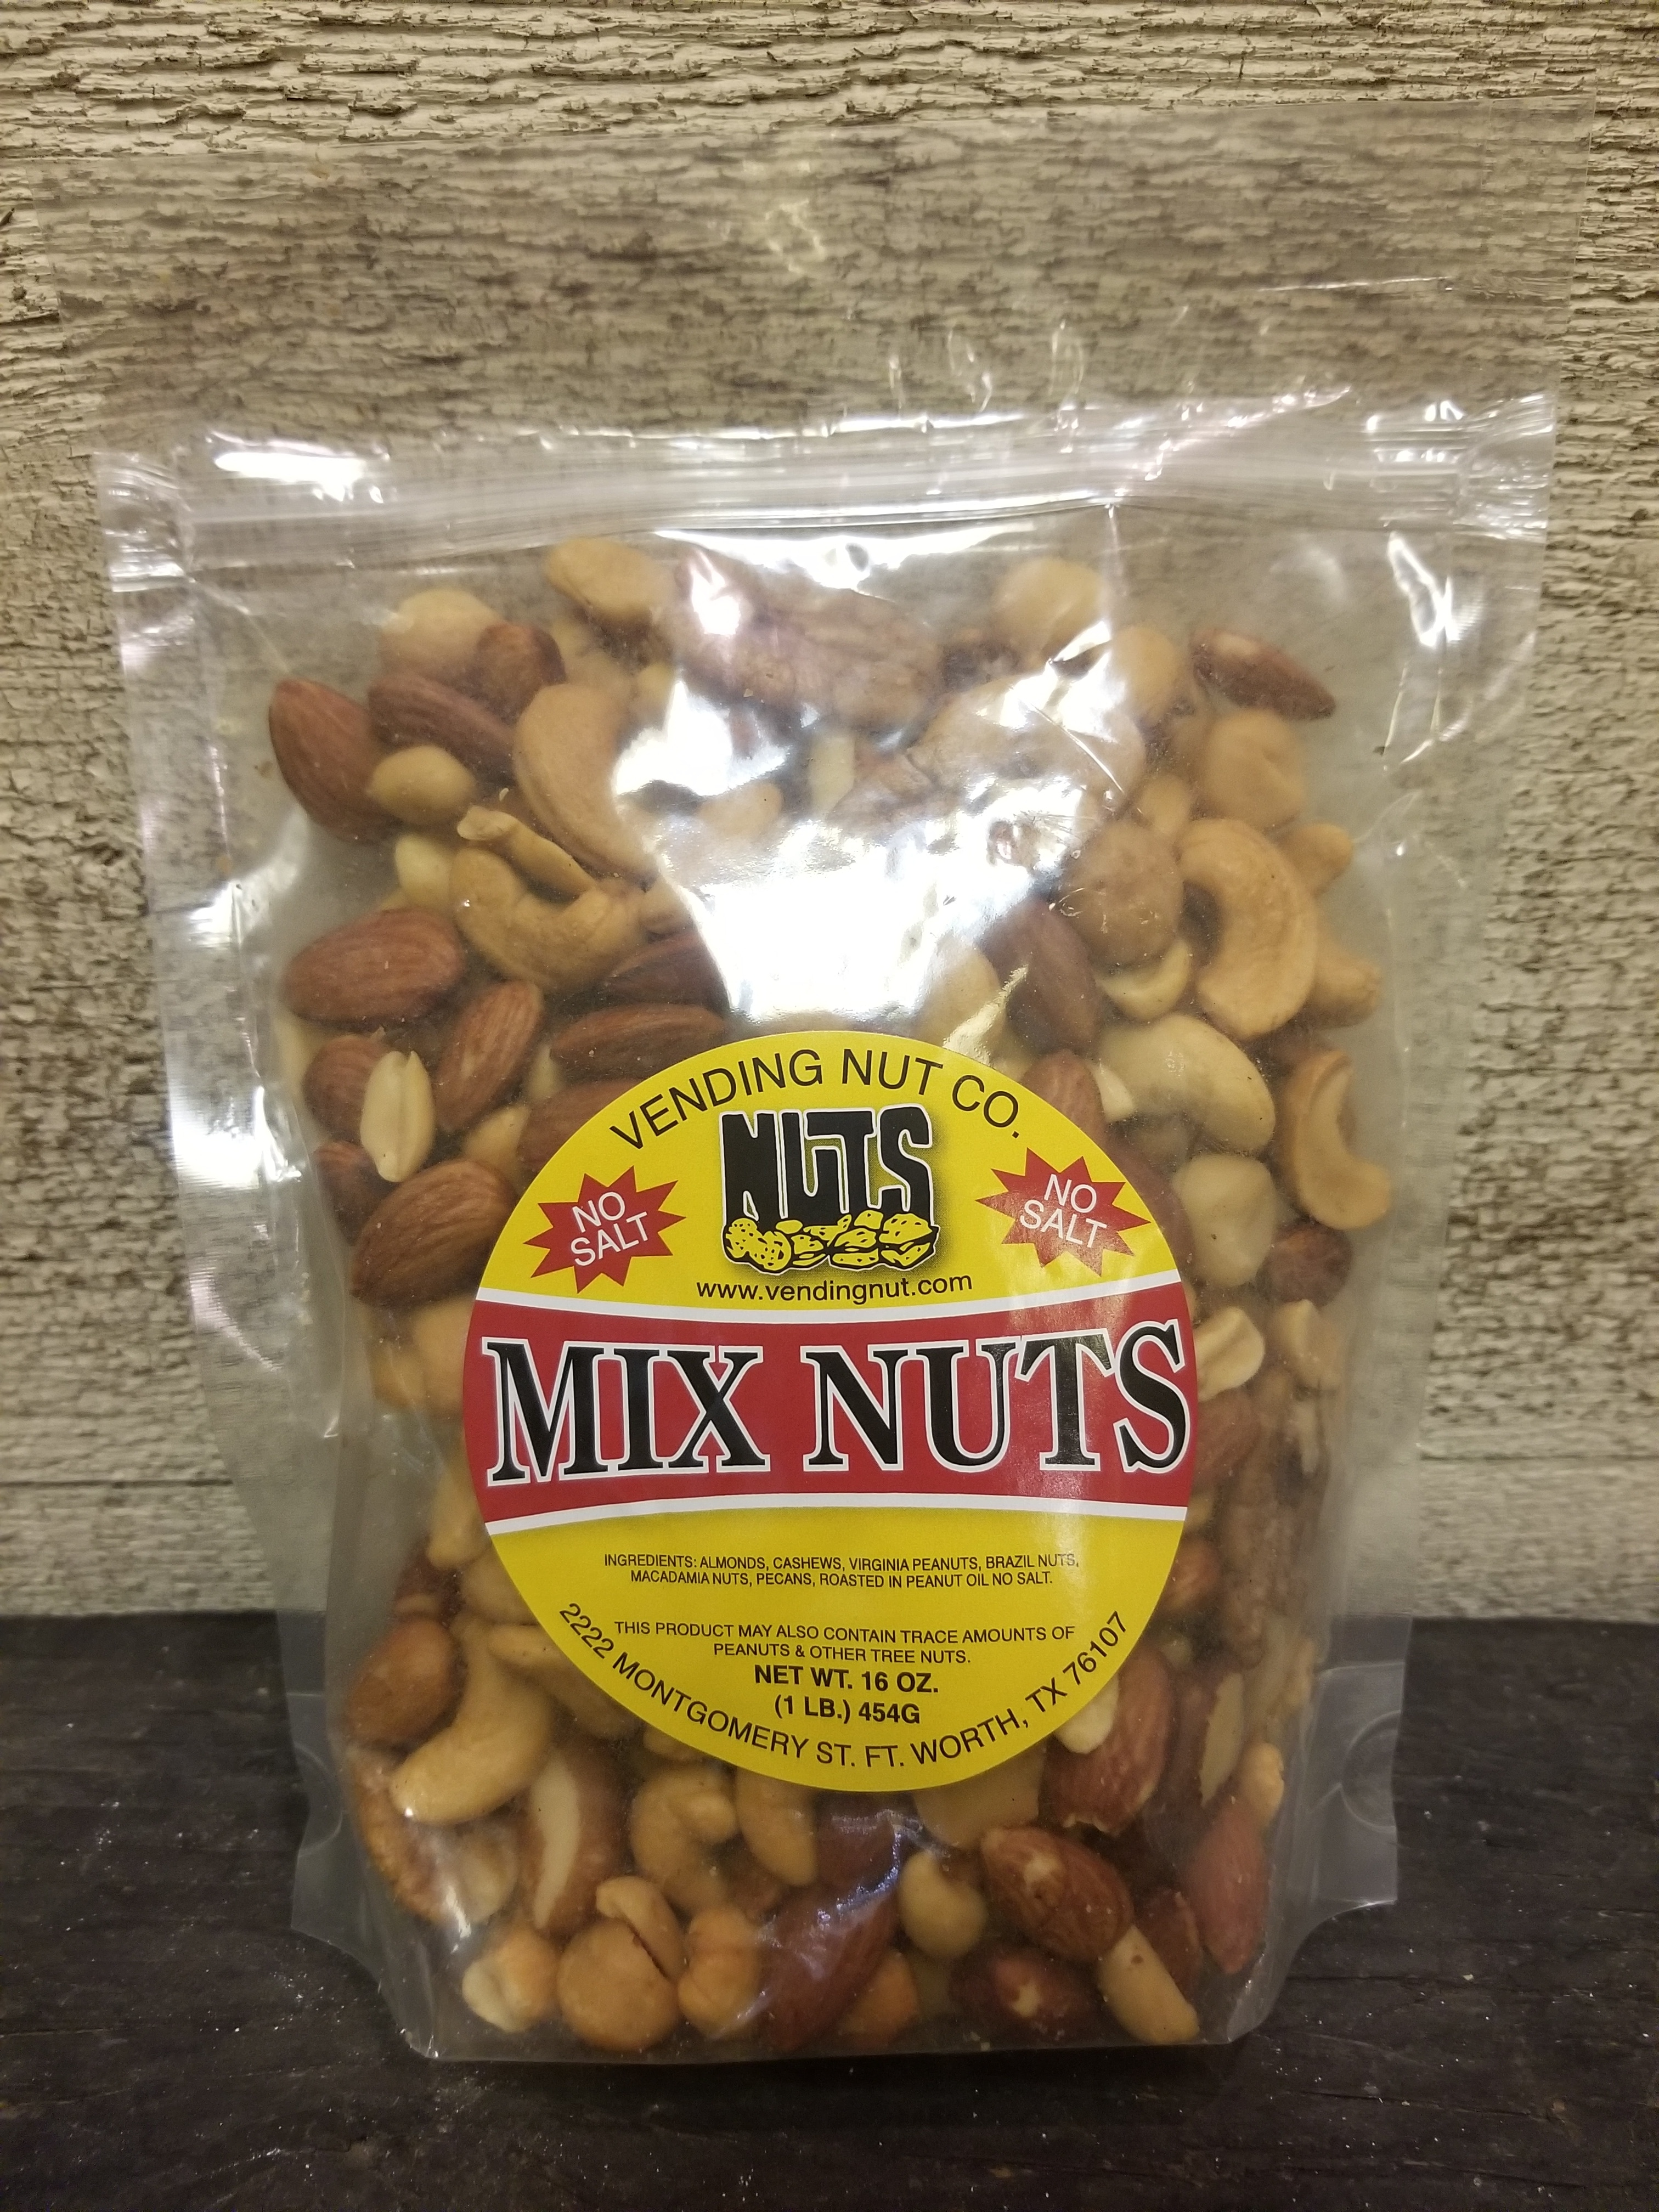 Vending Nut Co. Mixed Nuts